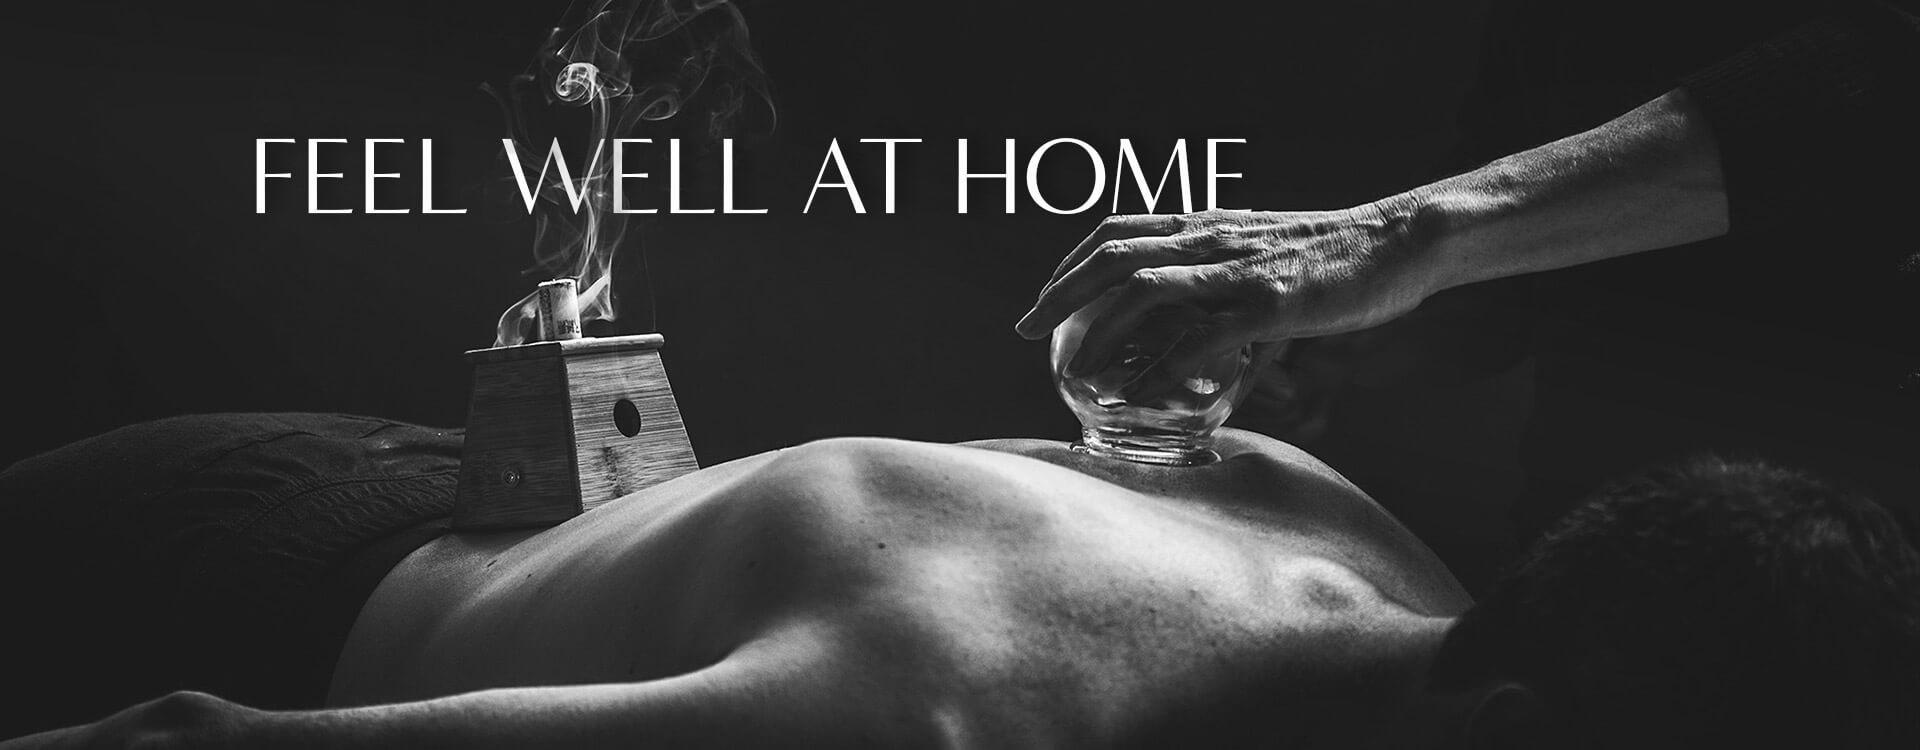 fell well at home